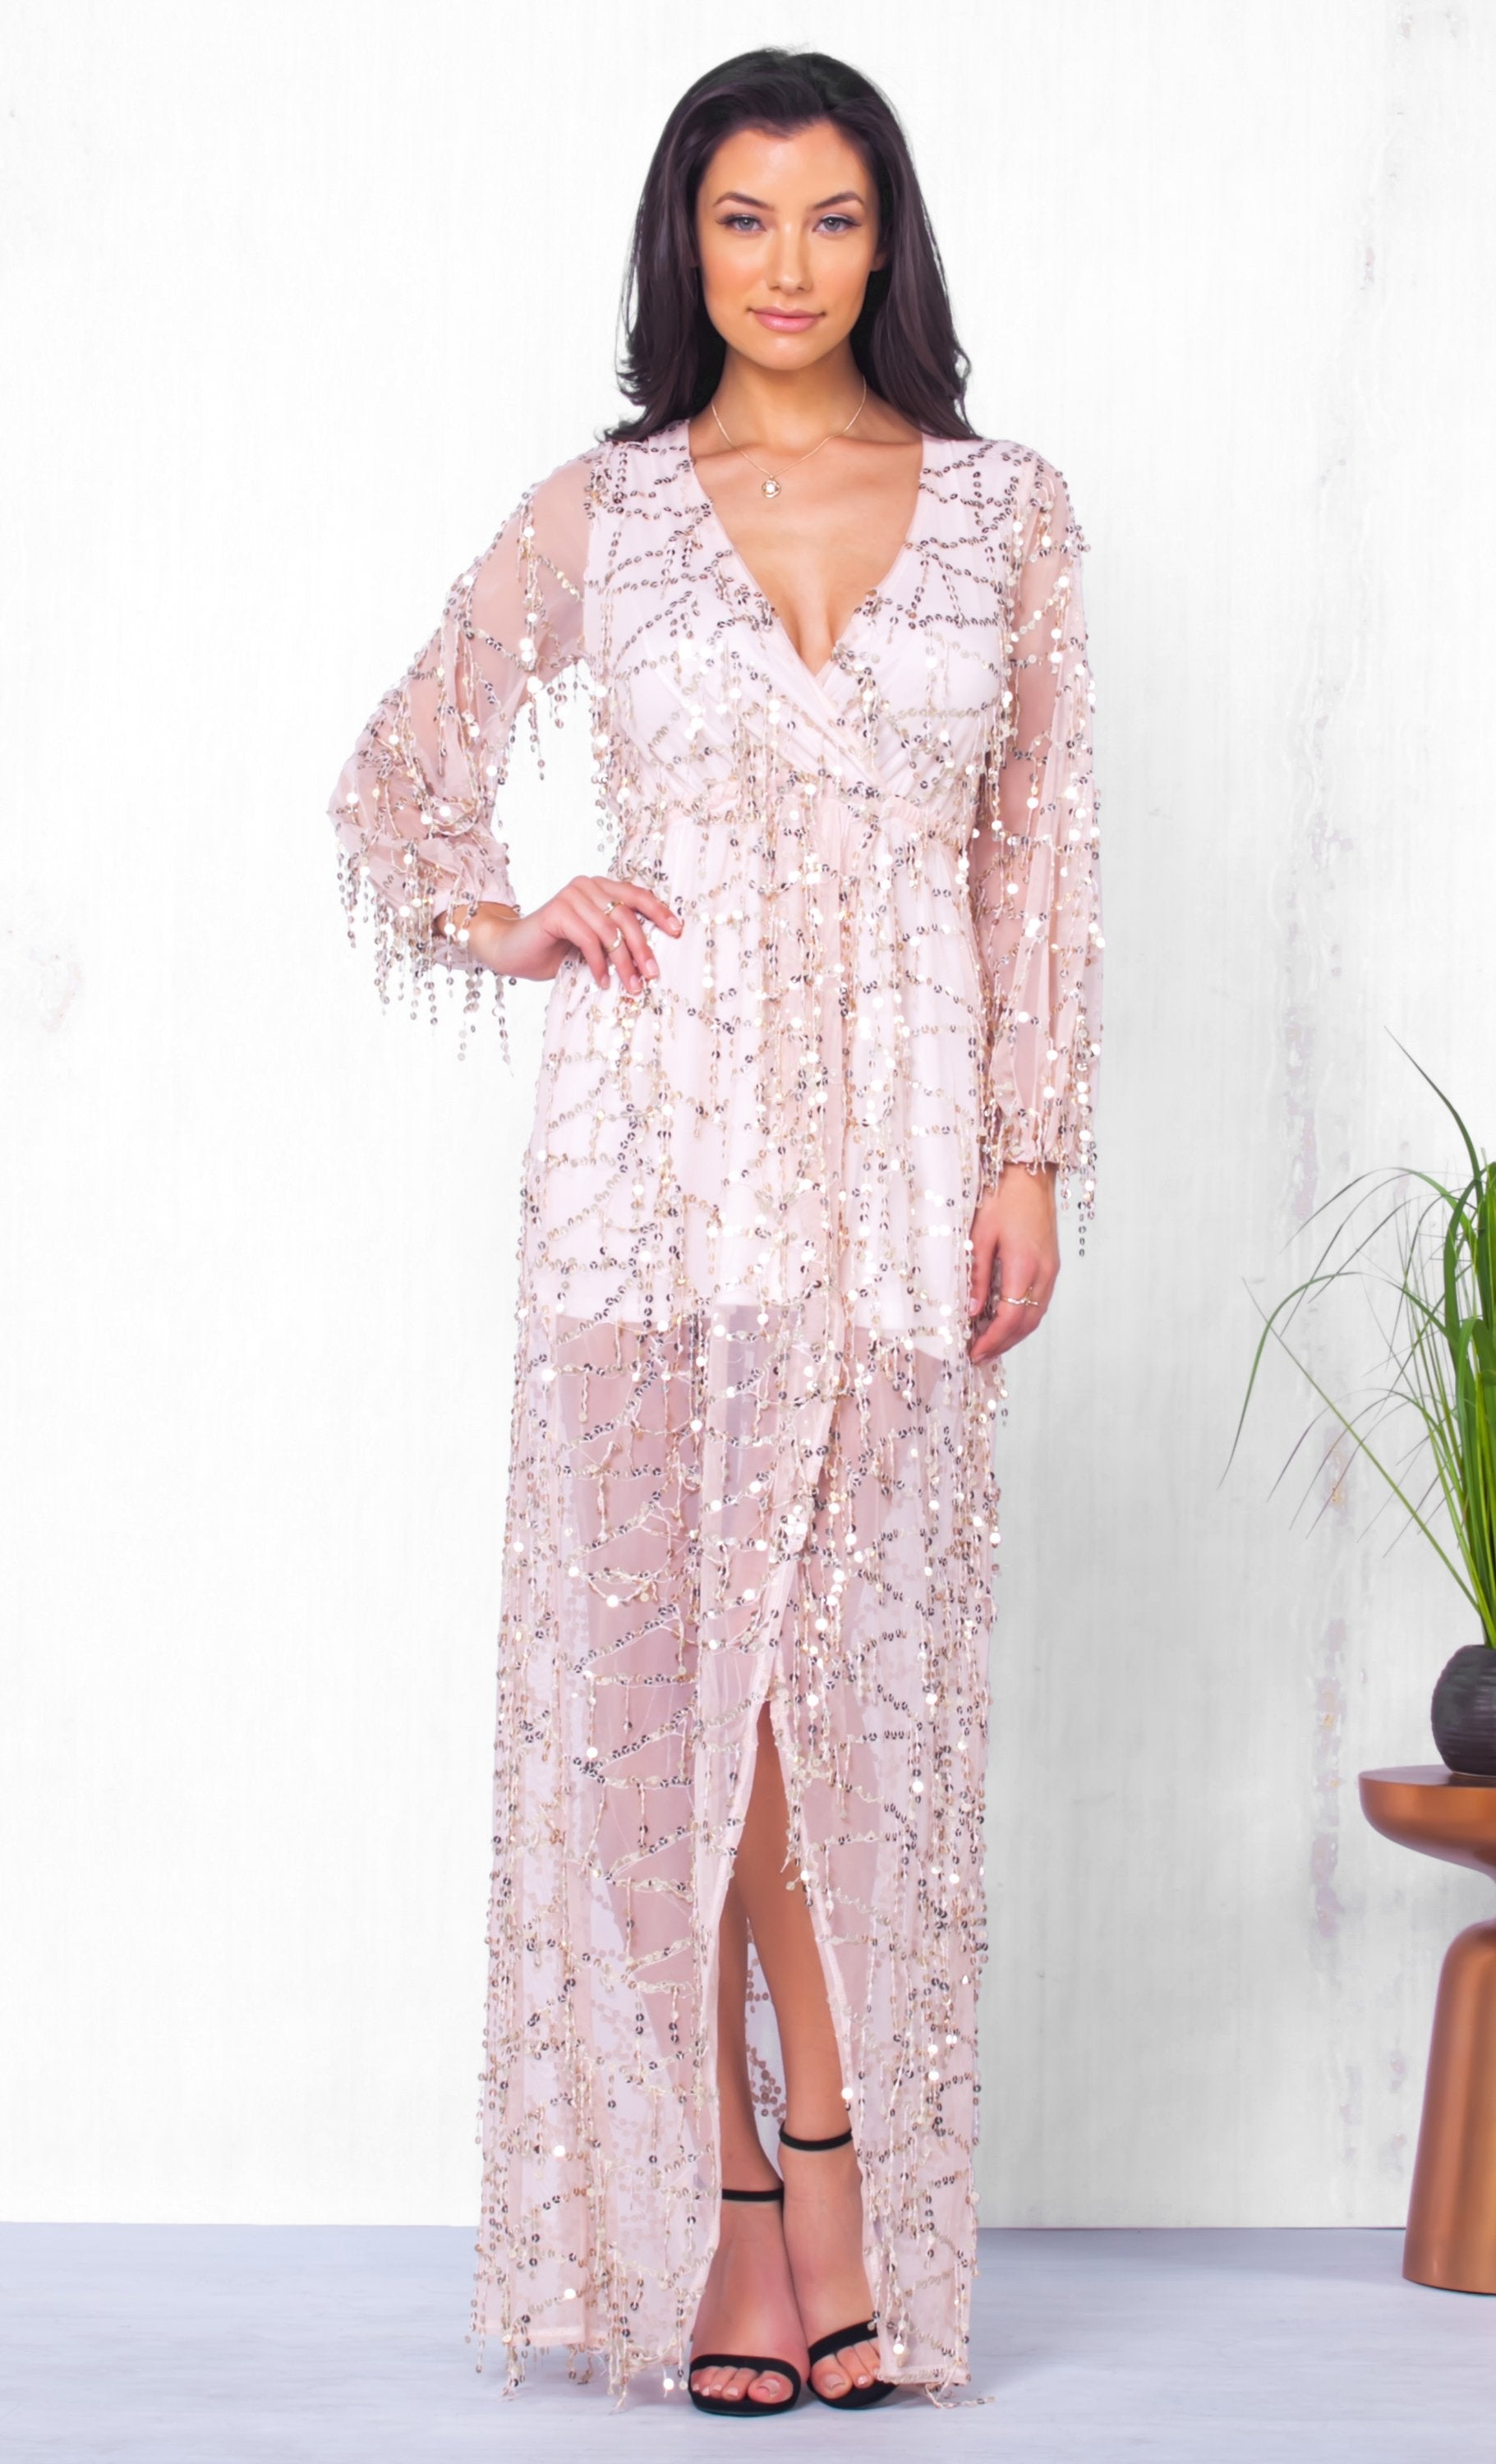 Indie XO Crown Jewels White Gold Sequin Long Sleeve Cross Wrap V Neck Fringe Slit Maxi Dress - Just Ours!